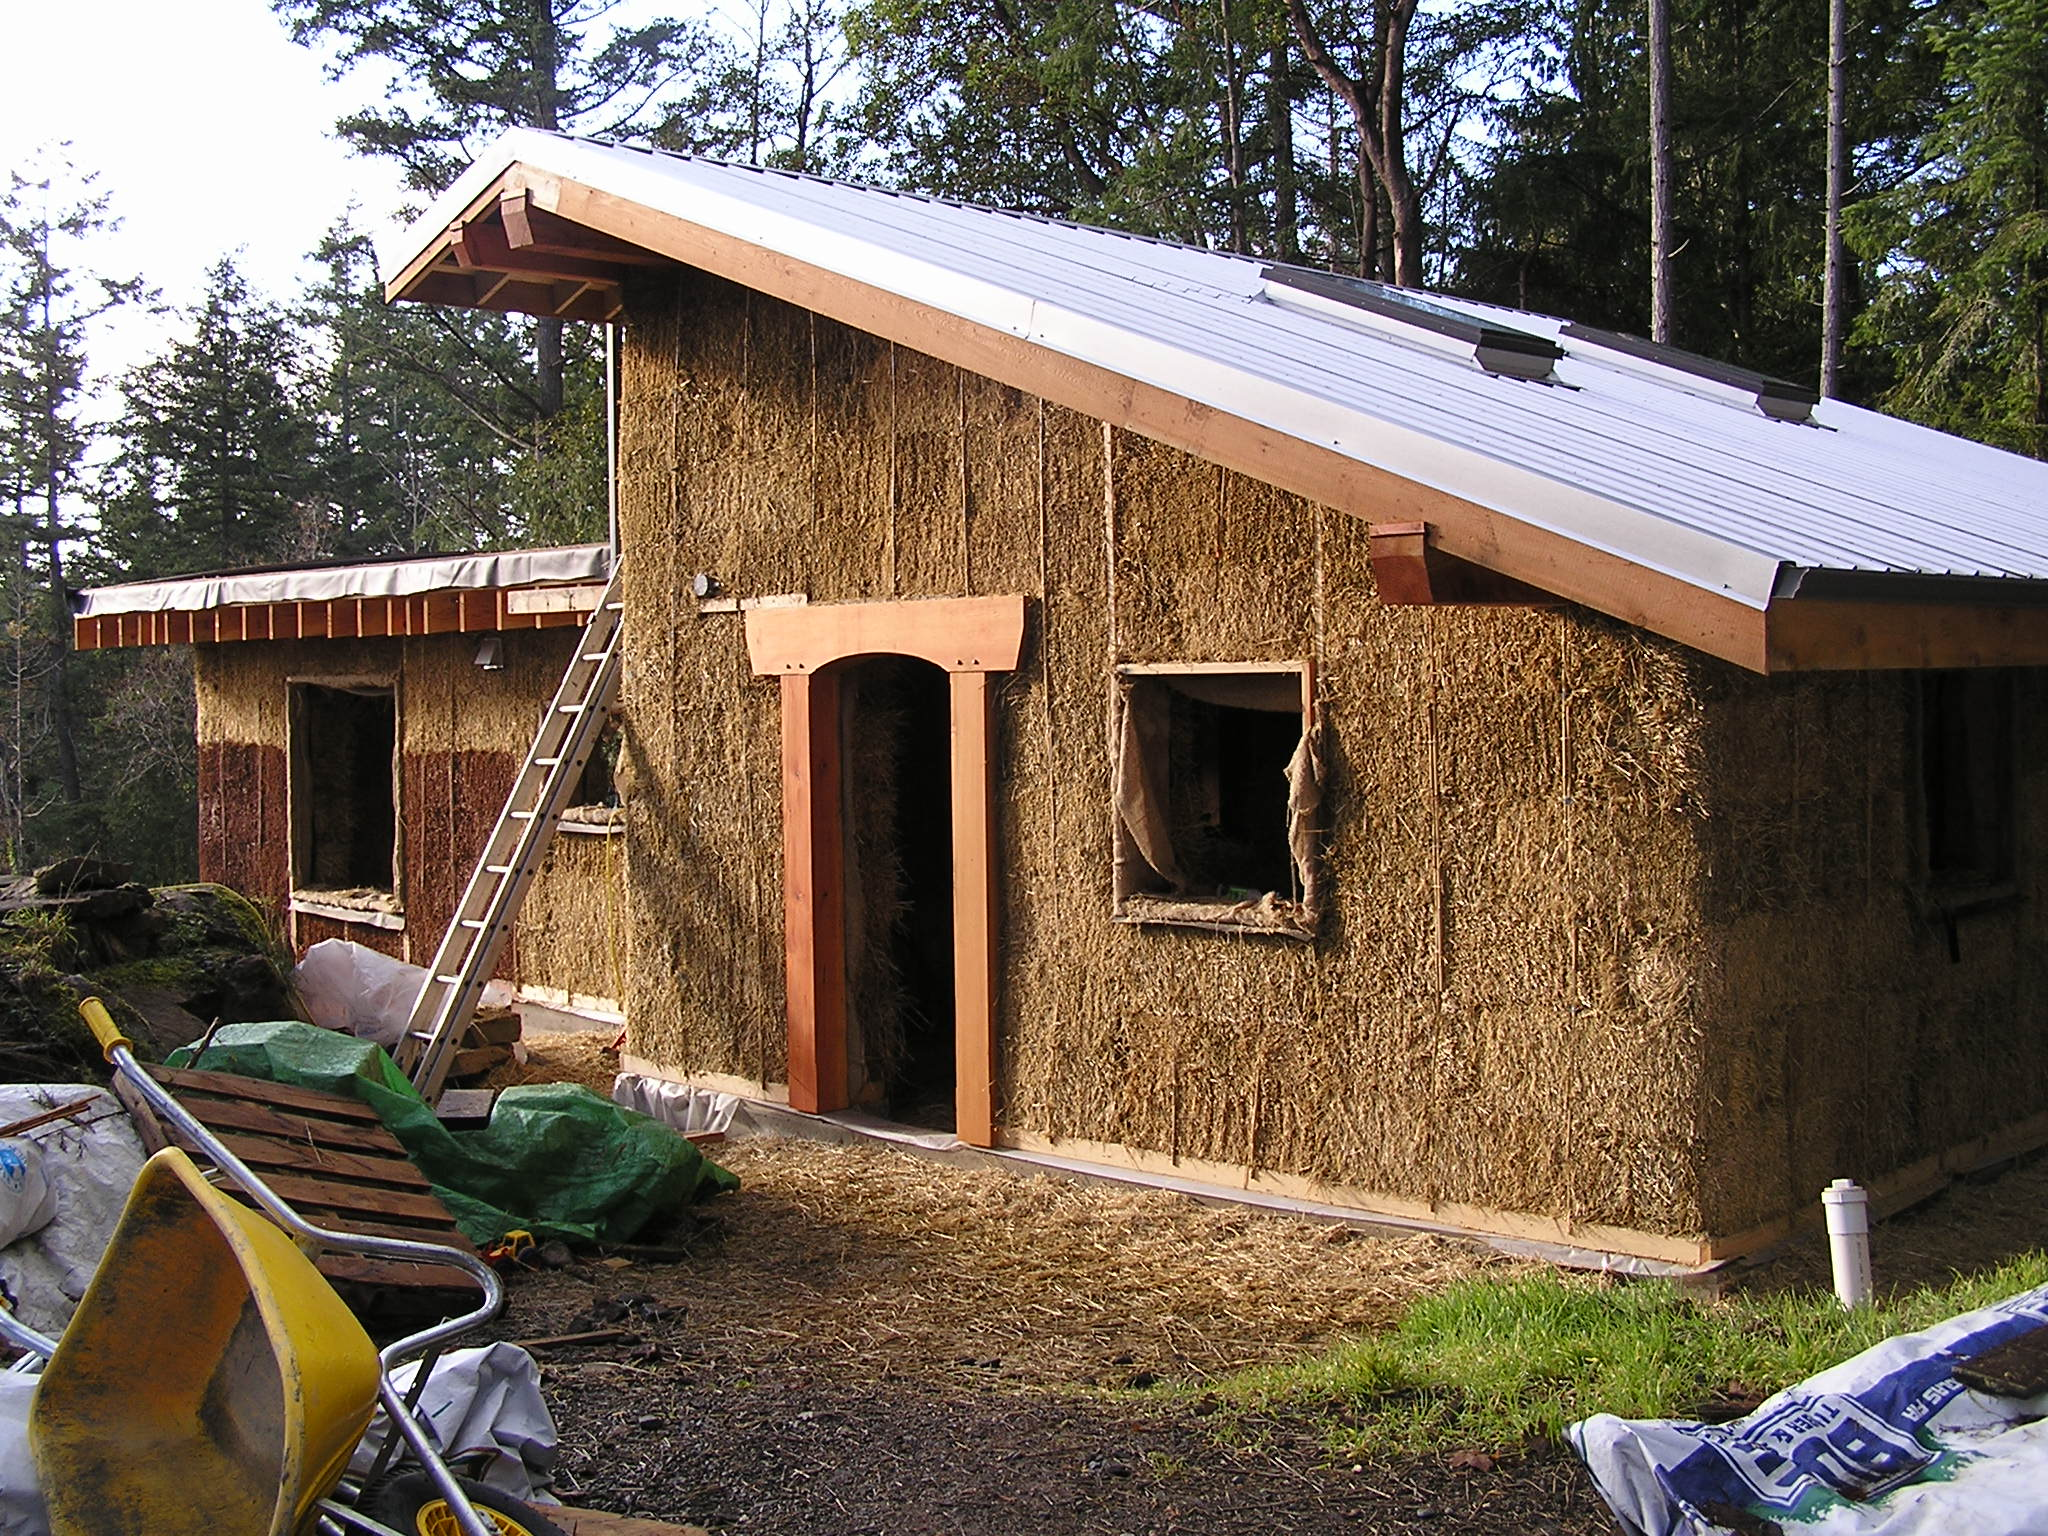 Strawbale construction inspirational village for Home construction design